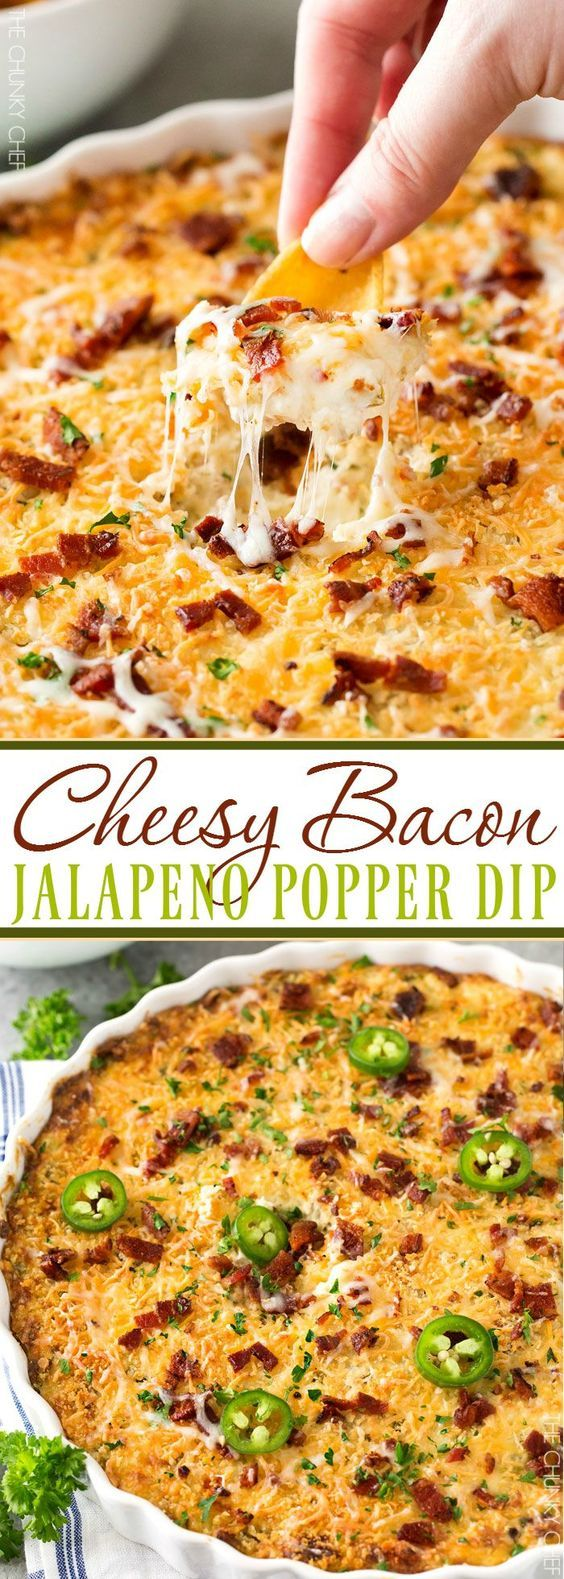 his cheesy jalapeno popper dip has an added element that makes it extra special… bacon! Everything is better with bacon right? And not just any bacon… NatureRaised Farms Hickory Bacon. It's my new favorite! Thick, butcher's cut bacon, with no added hormones. Basically, it's the bacon you NEED to try #cheesy #bacon #jalapenopopper #dip #mexicanfood #easyrecipes